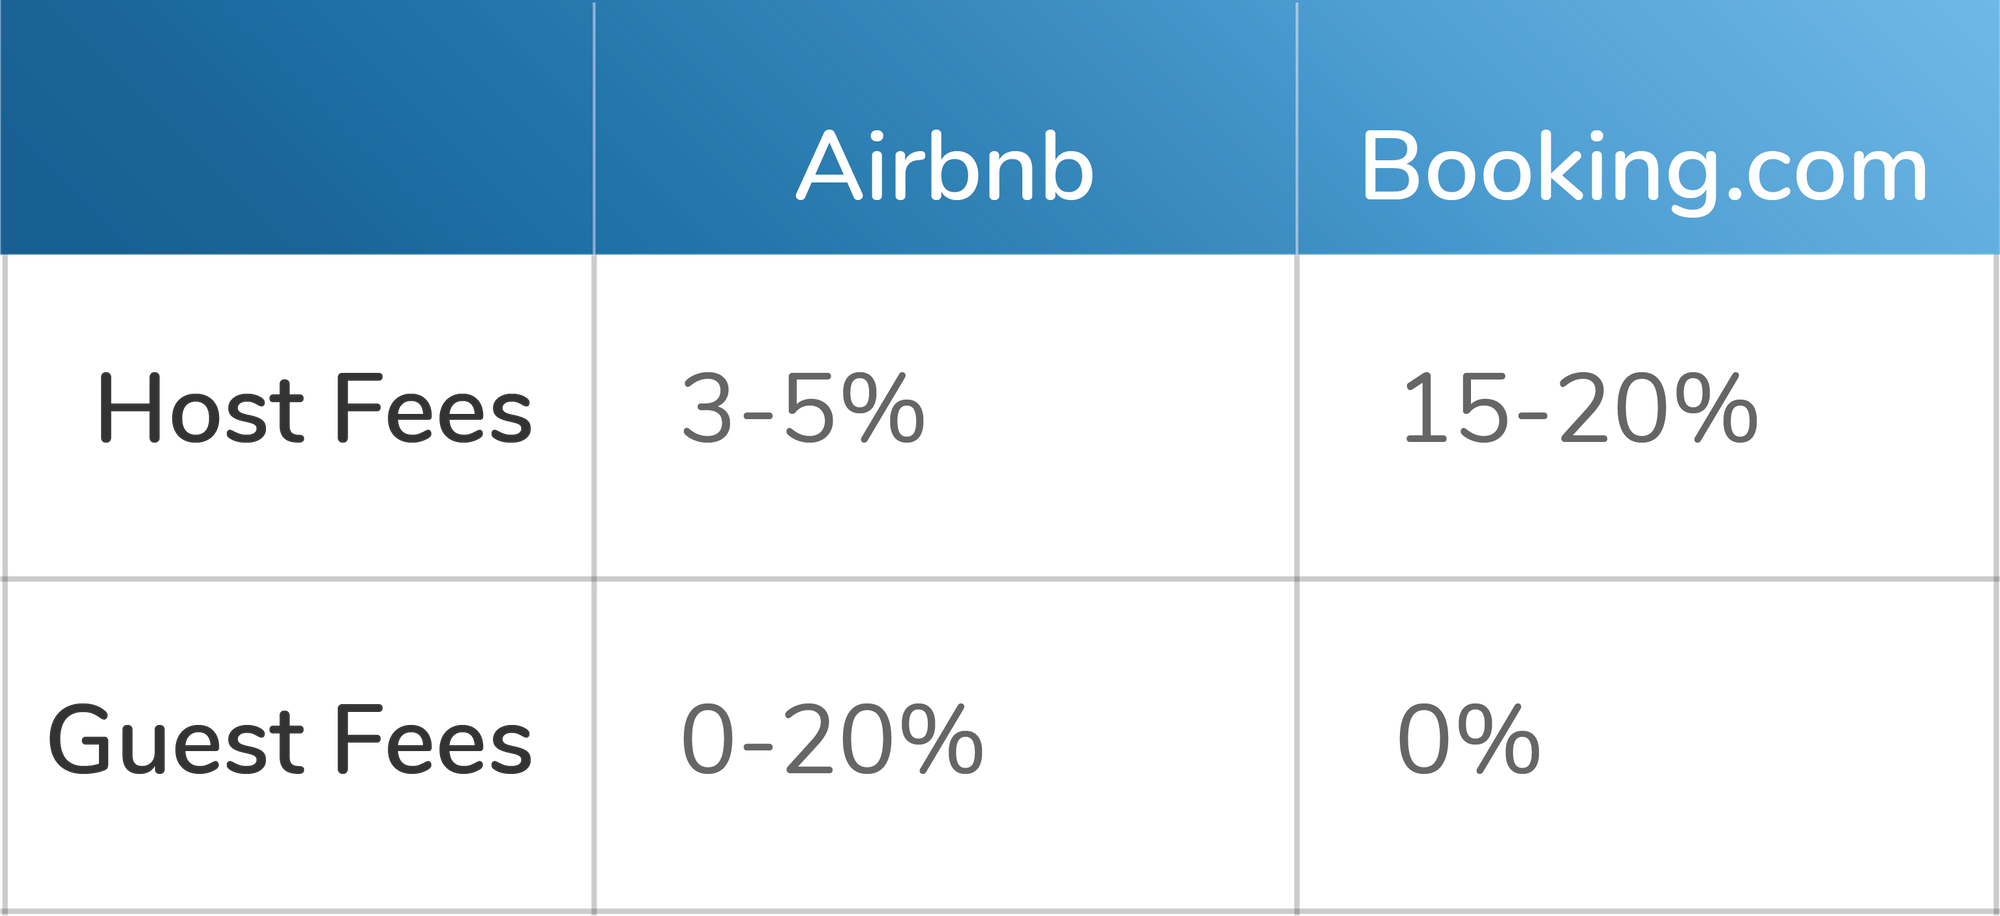 Airbnb and Booking.com commission fees and channel management comparison